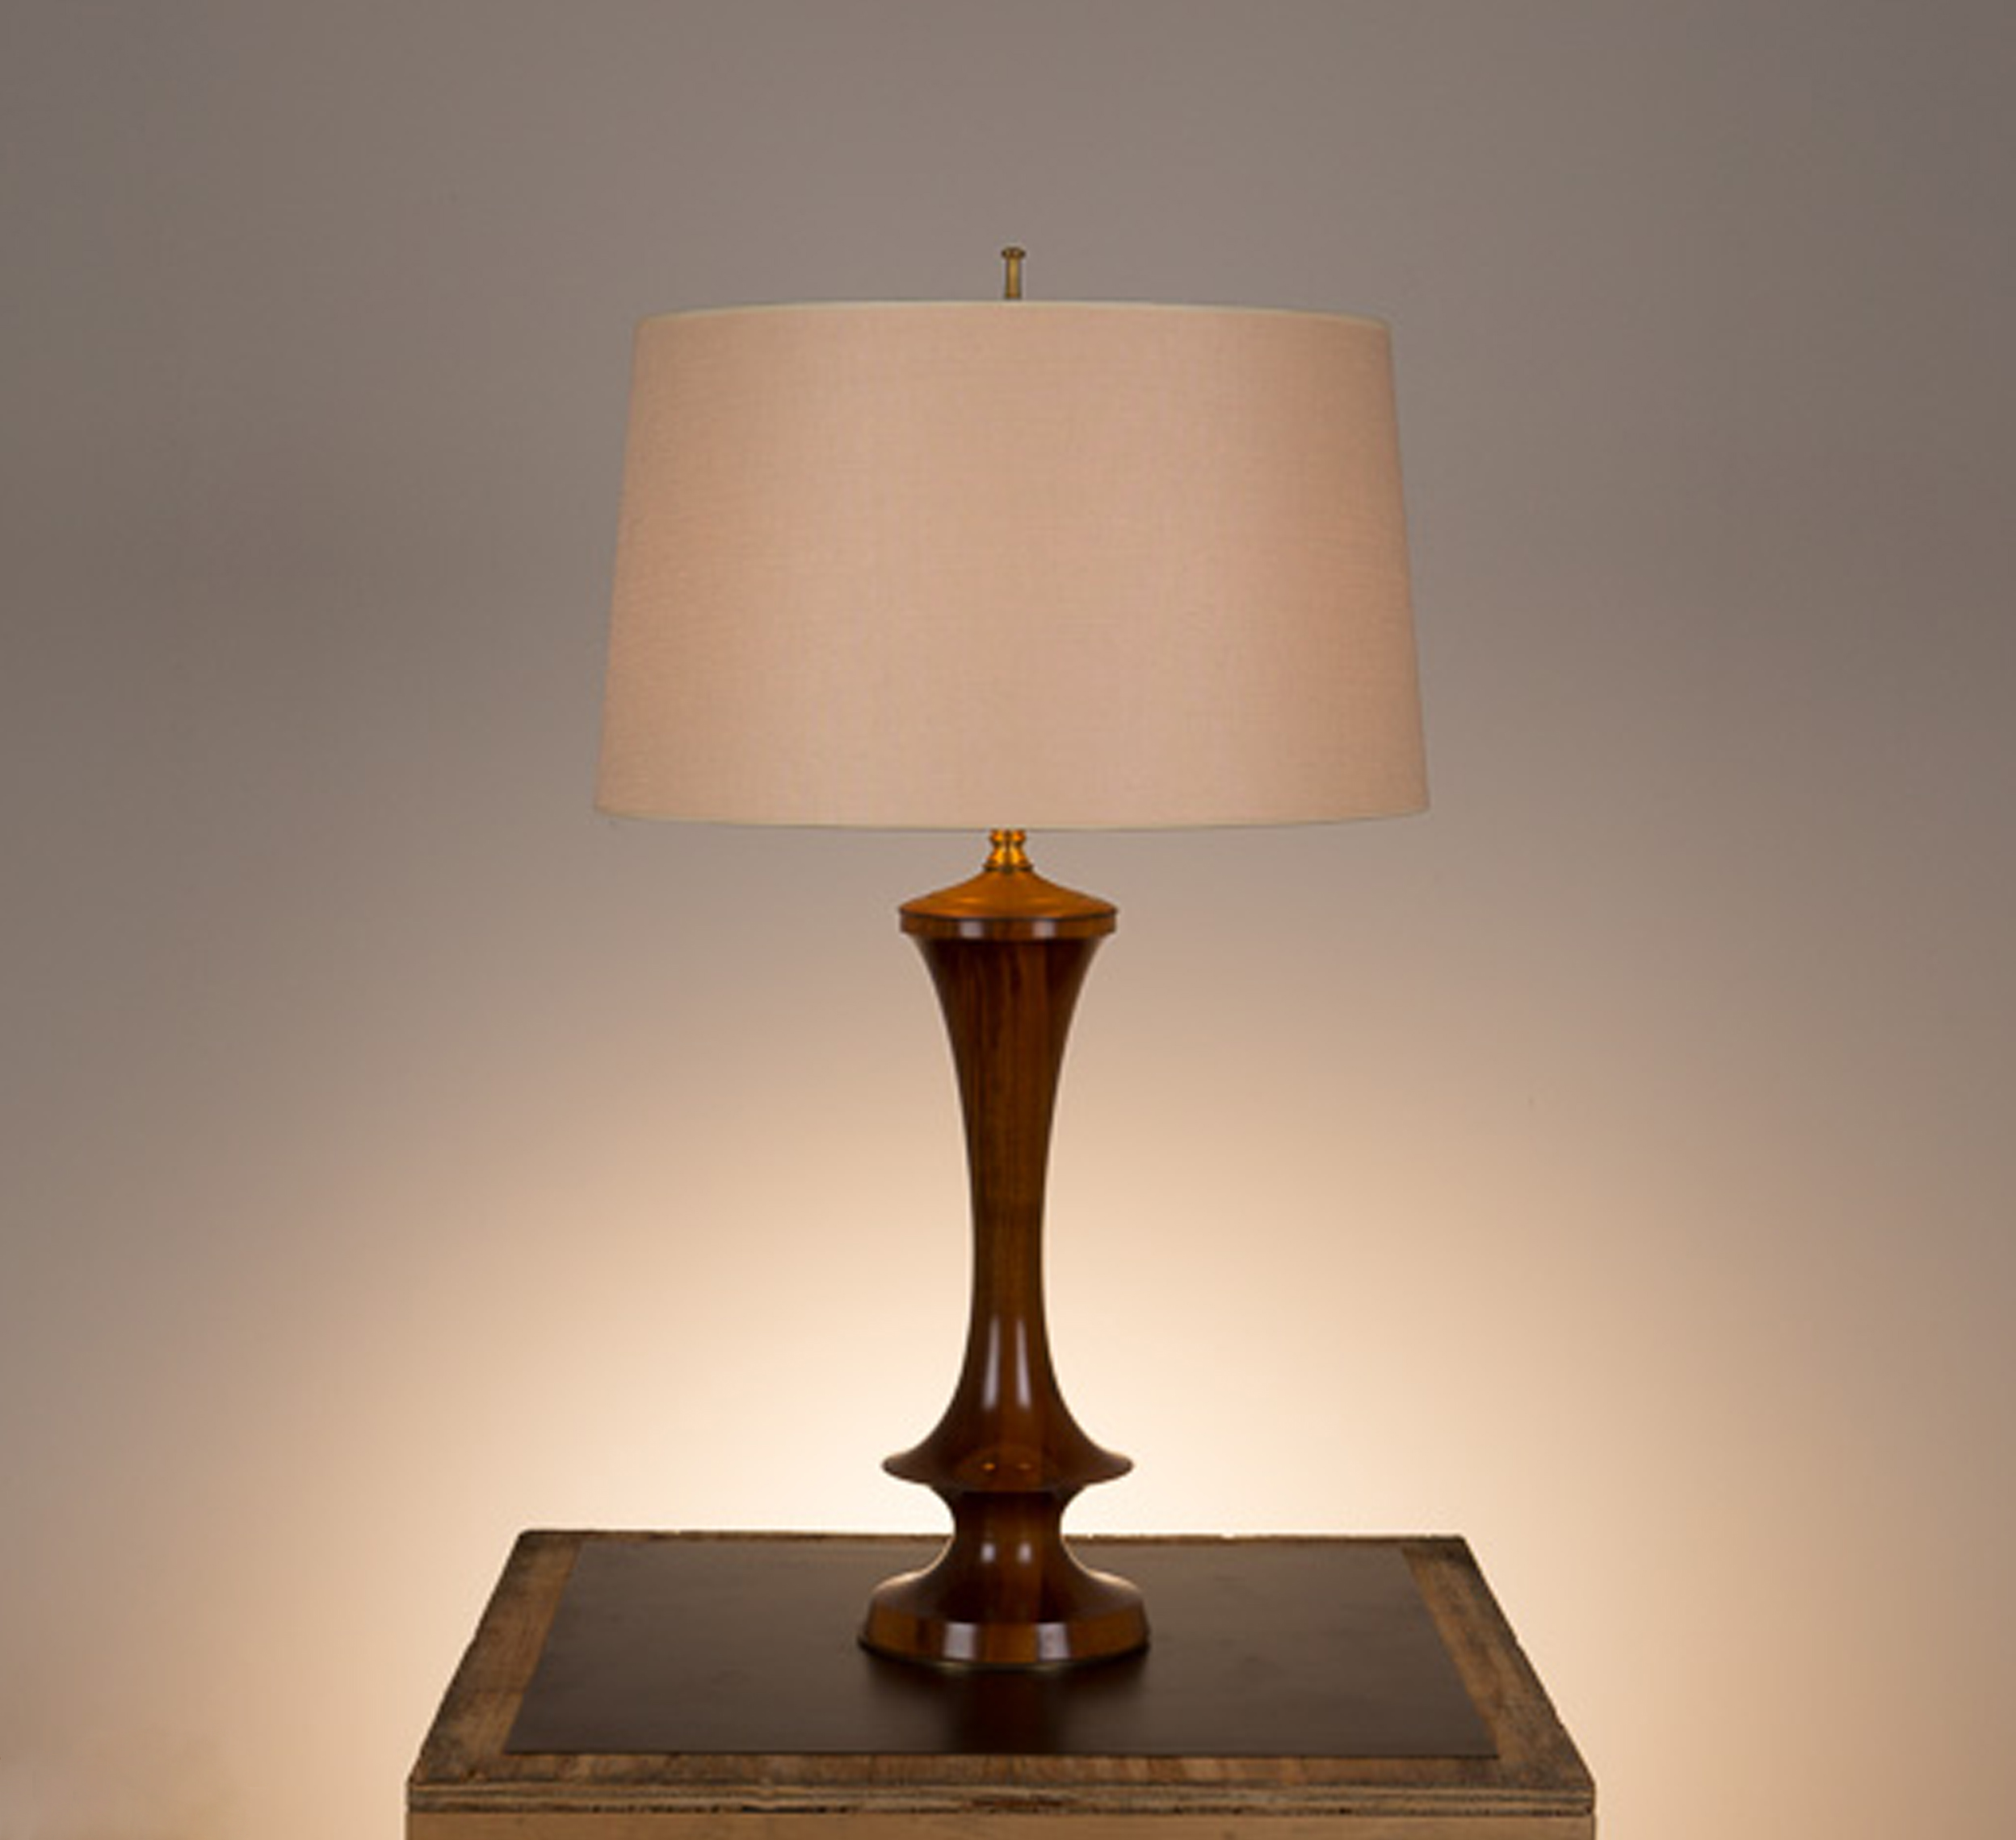 Samantha Table Lamp #2  French polished walnut, unlacquered hand polished brass fittings. Semi-closed top lamp shade in 738 beige linen.